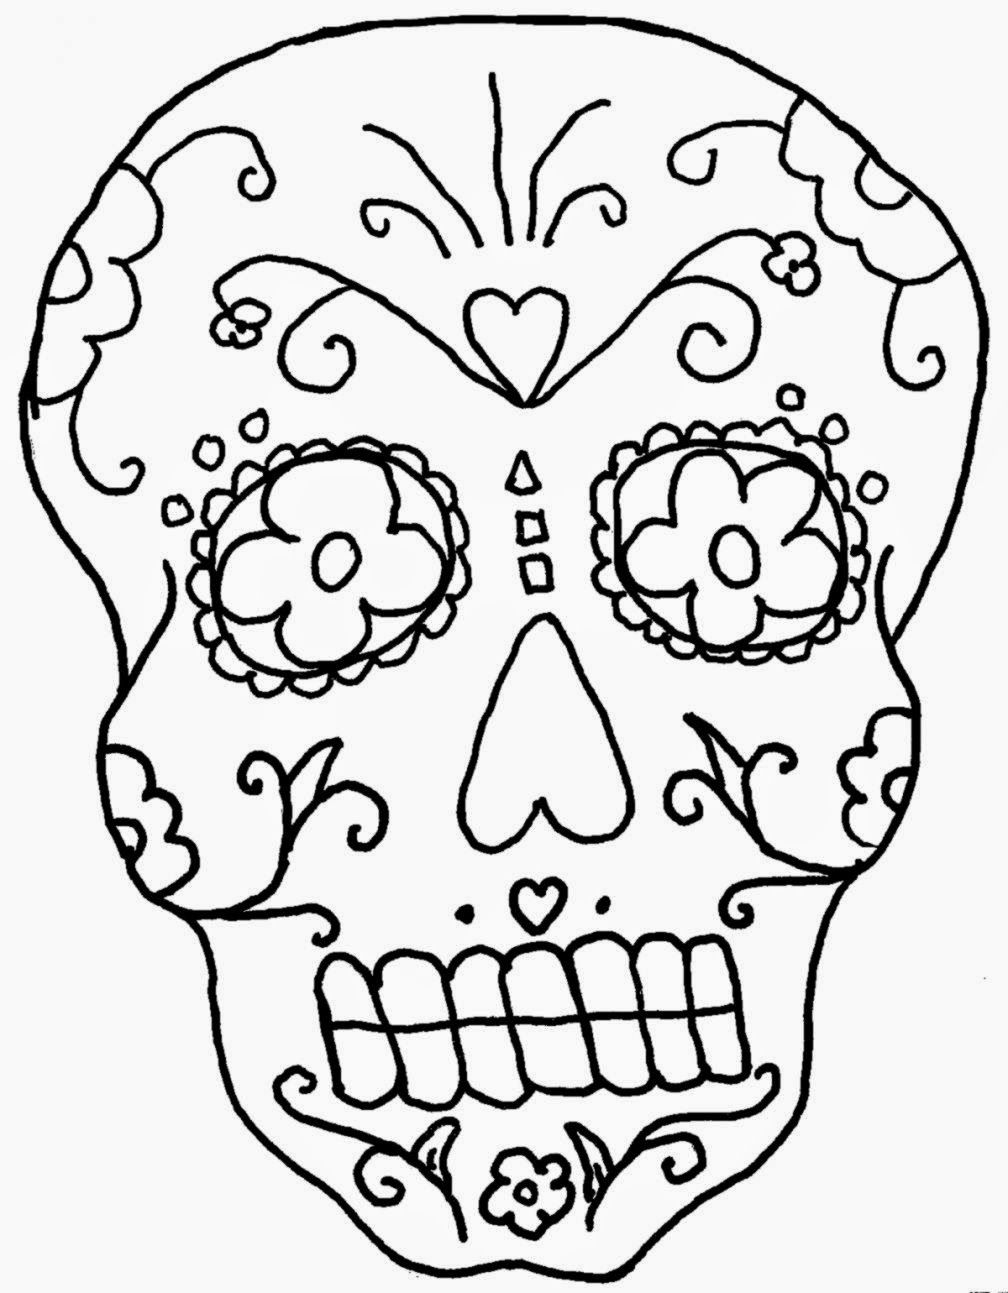 coloring skull day of the dead day of the dead skull coloring pages printable coloring home skull coloring of the day dead